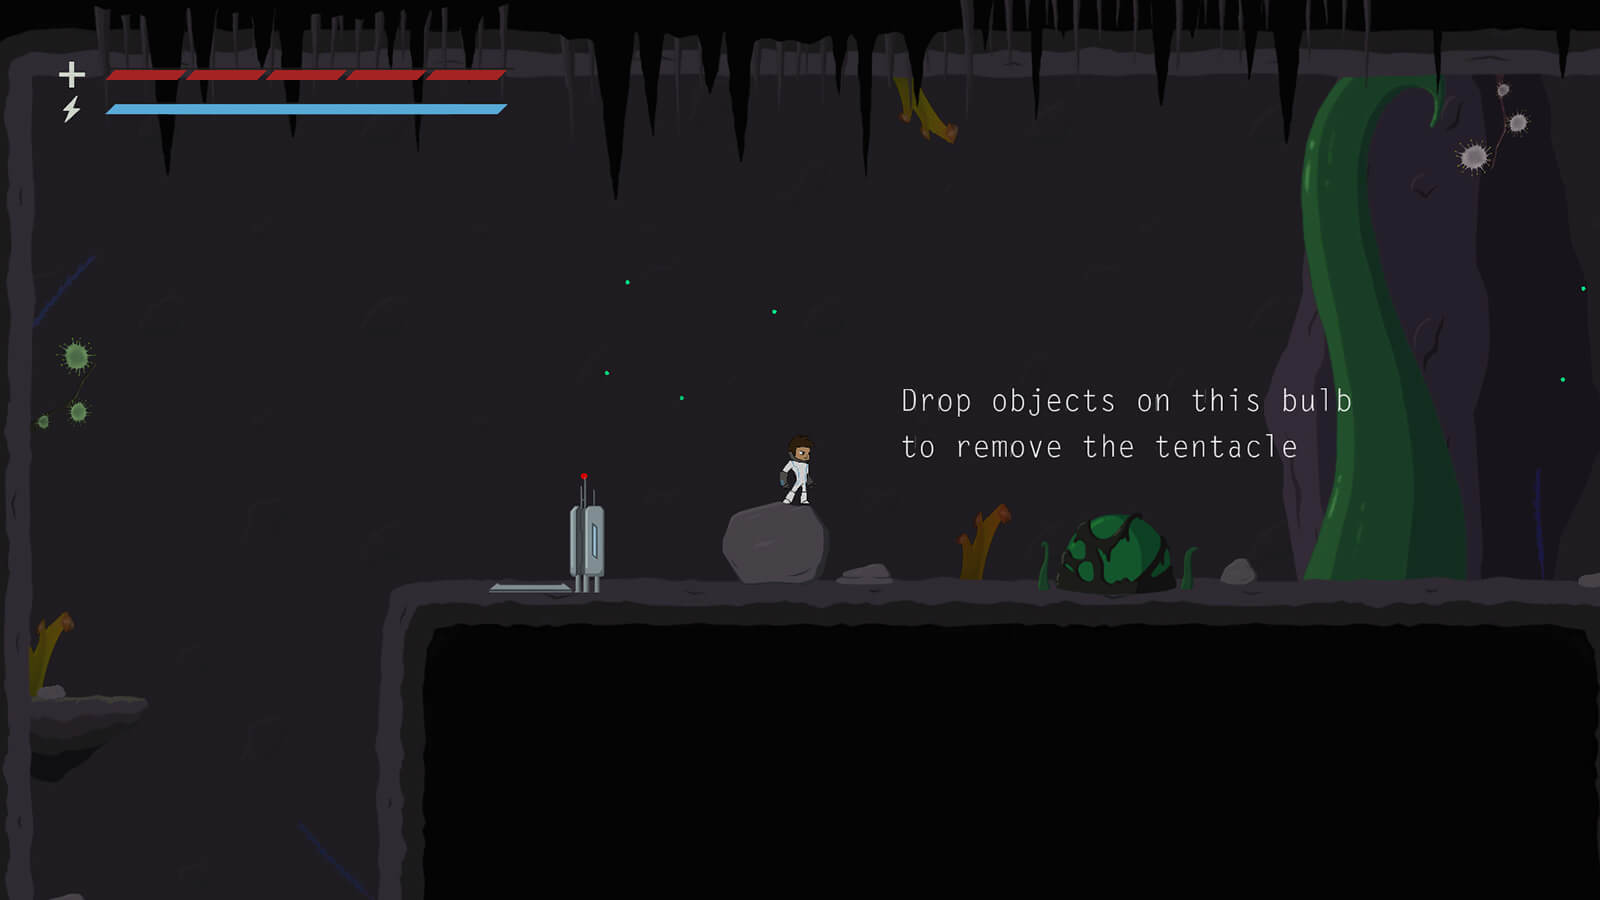 A futuristic 2D character in a white body suit stands in front of a towering green tentacle on a dark, alien world.